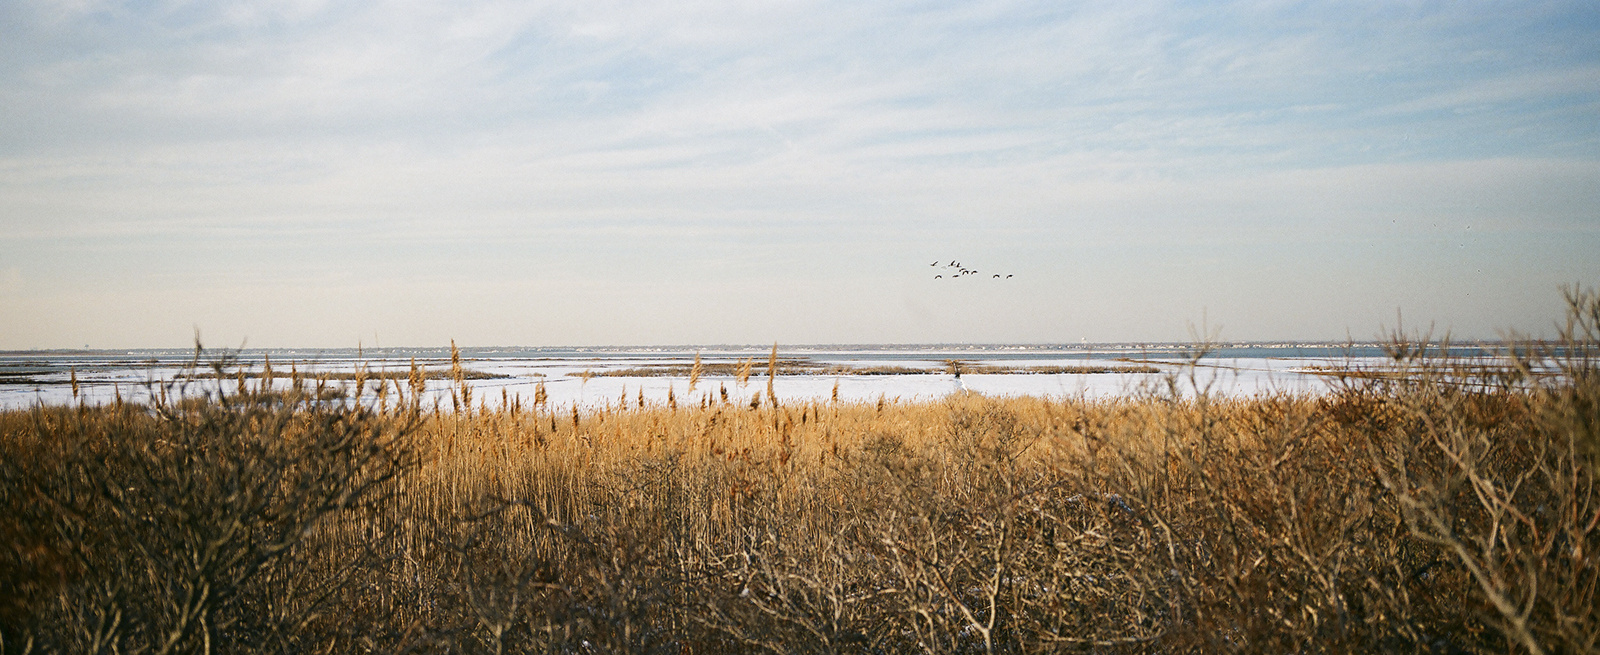 From  Hallowed Ground : Gilgo Beach, off of Ocean Parkway on Long Island, where several of the women's bodies were found.